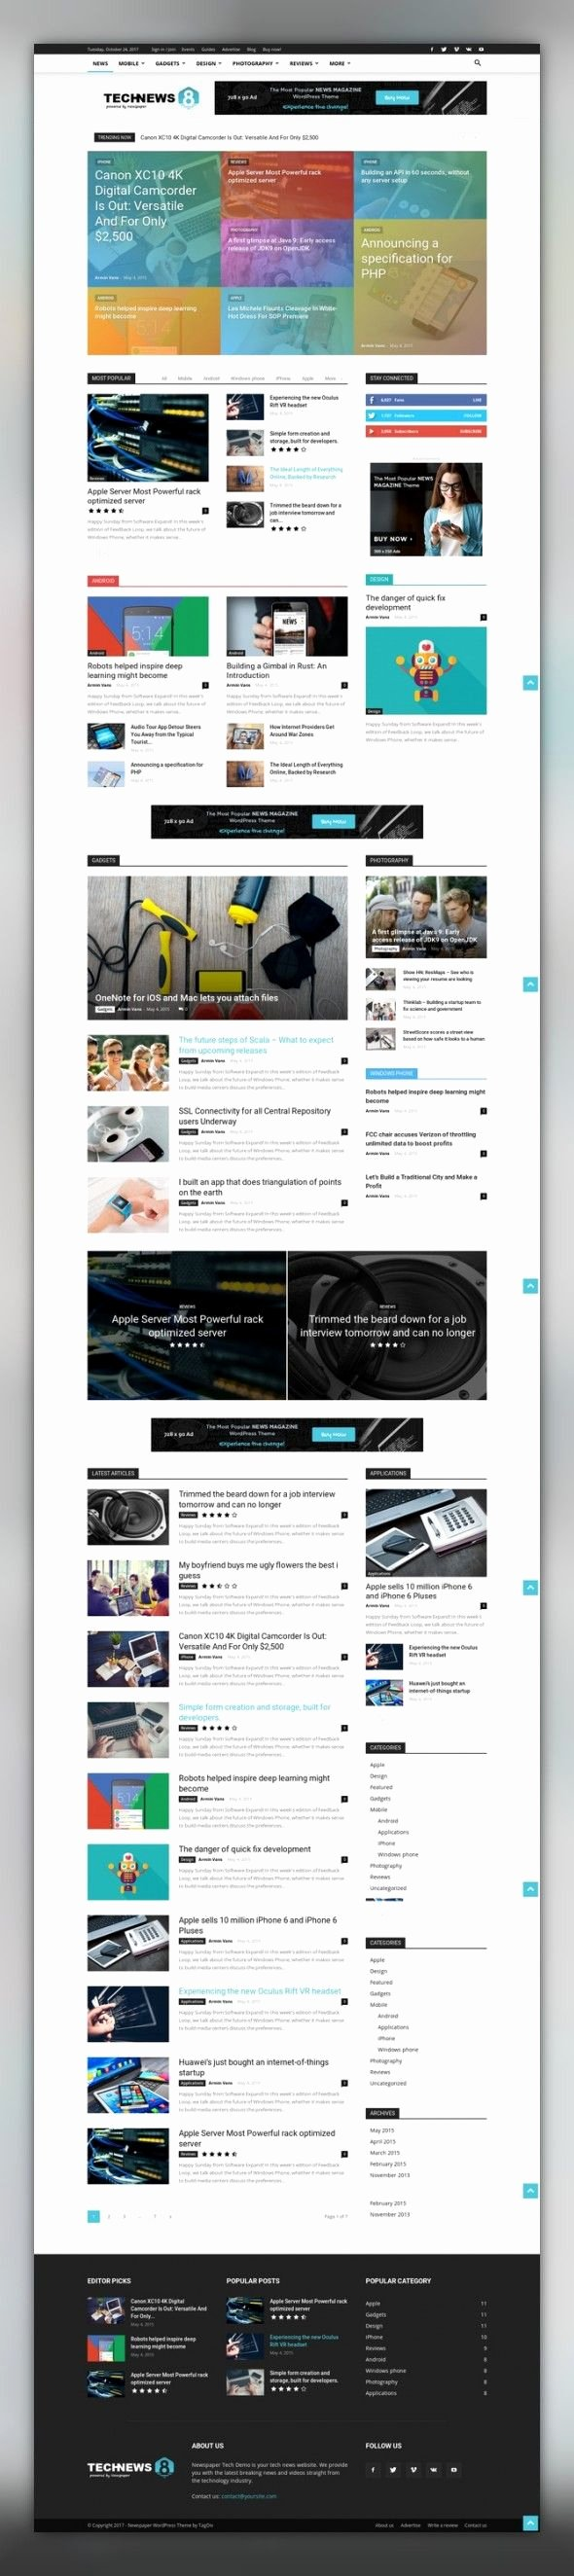 Current event Paper format Elegant the 25 Best Newspaper Article Template Ideas On Pinterest